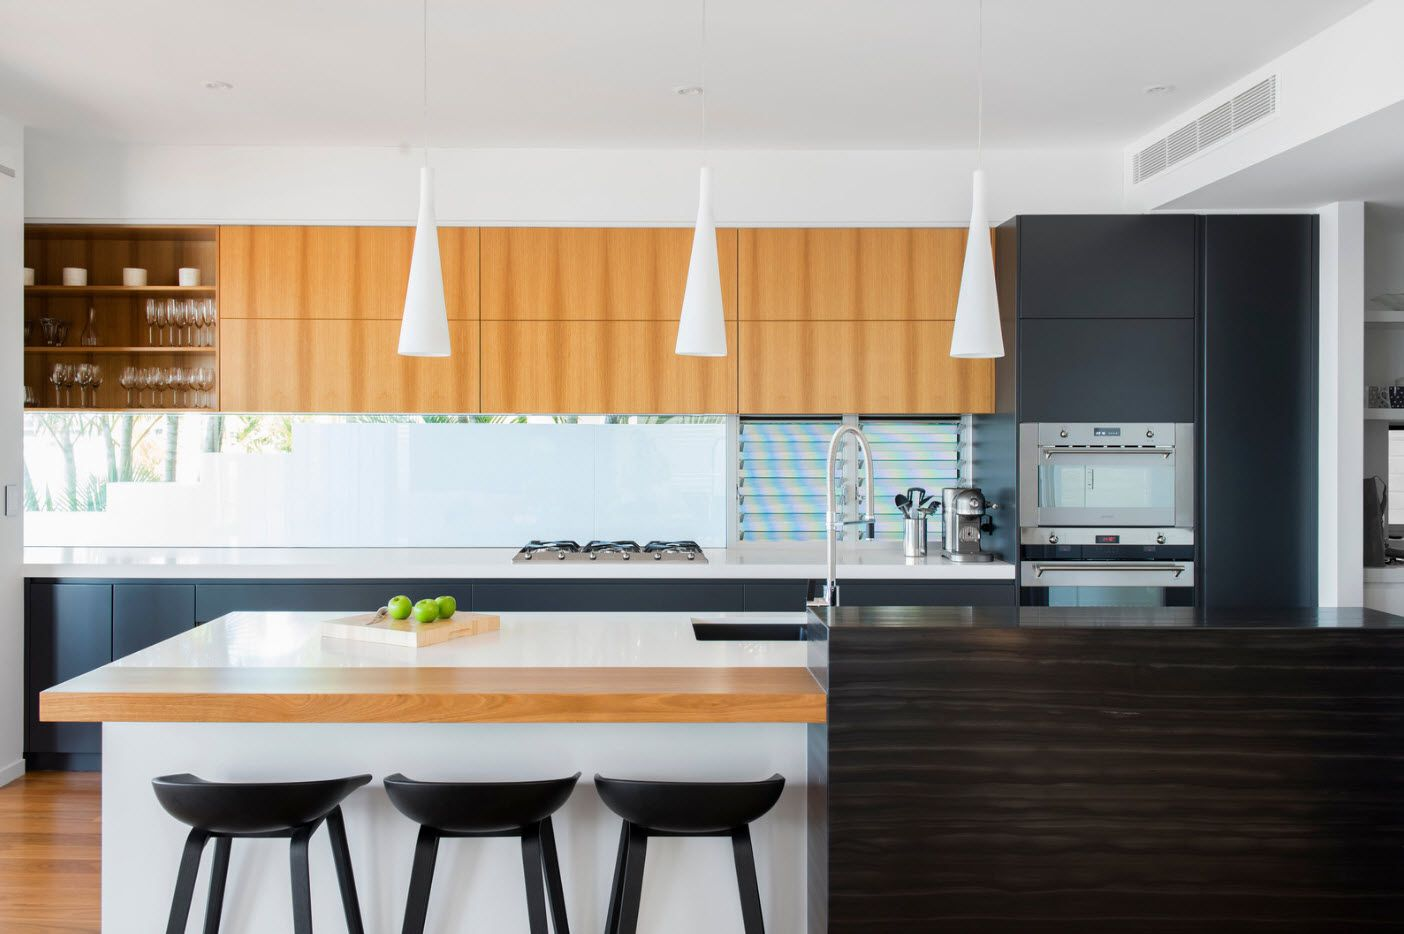 Neat geometrically right formed kitchen interior in modern style with matted lampshades over the dining group